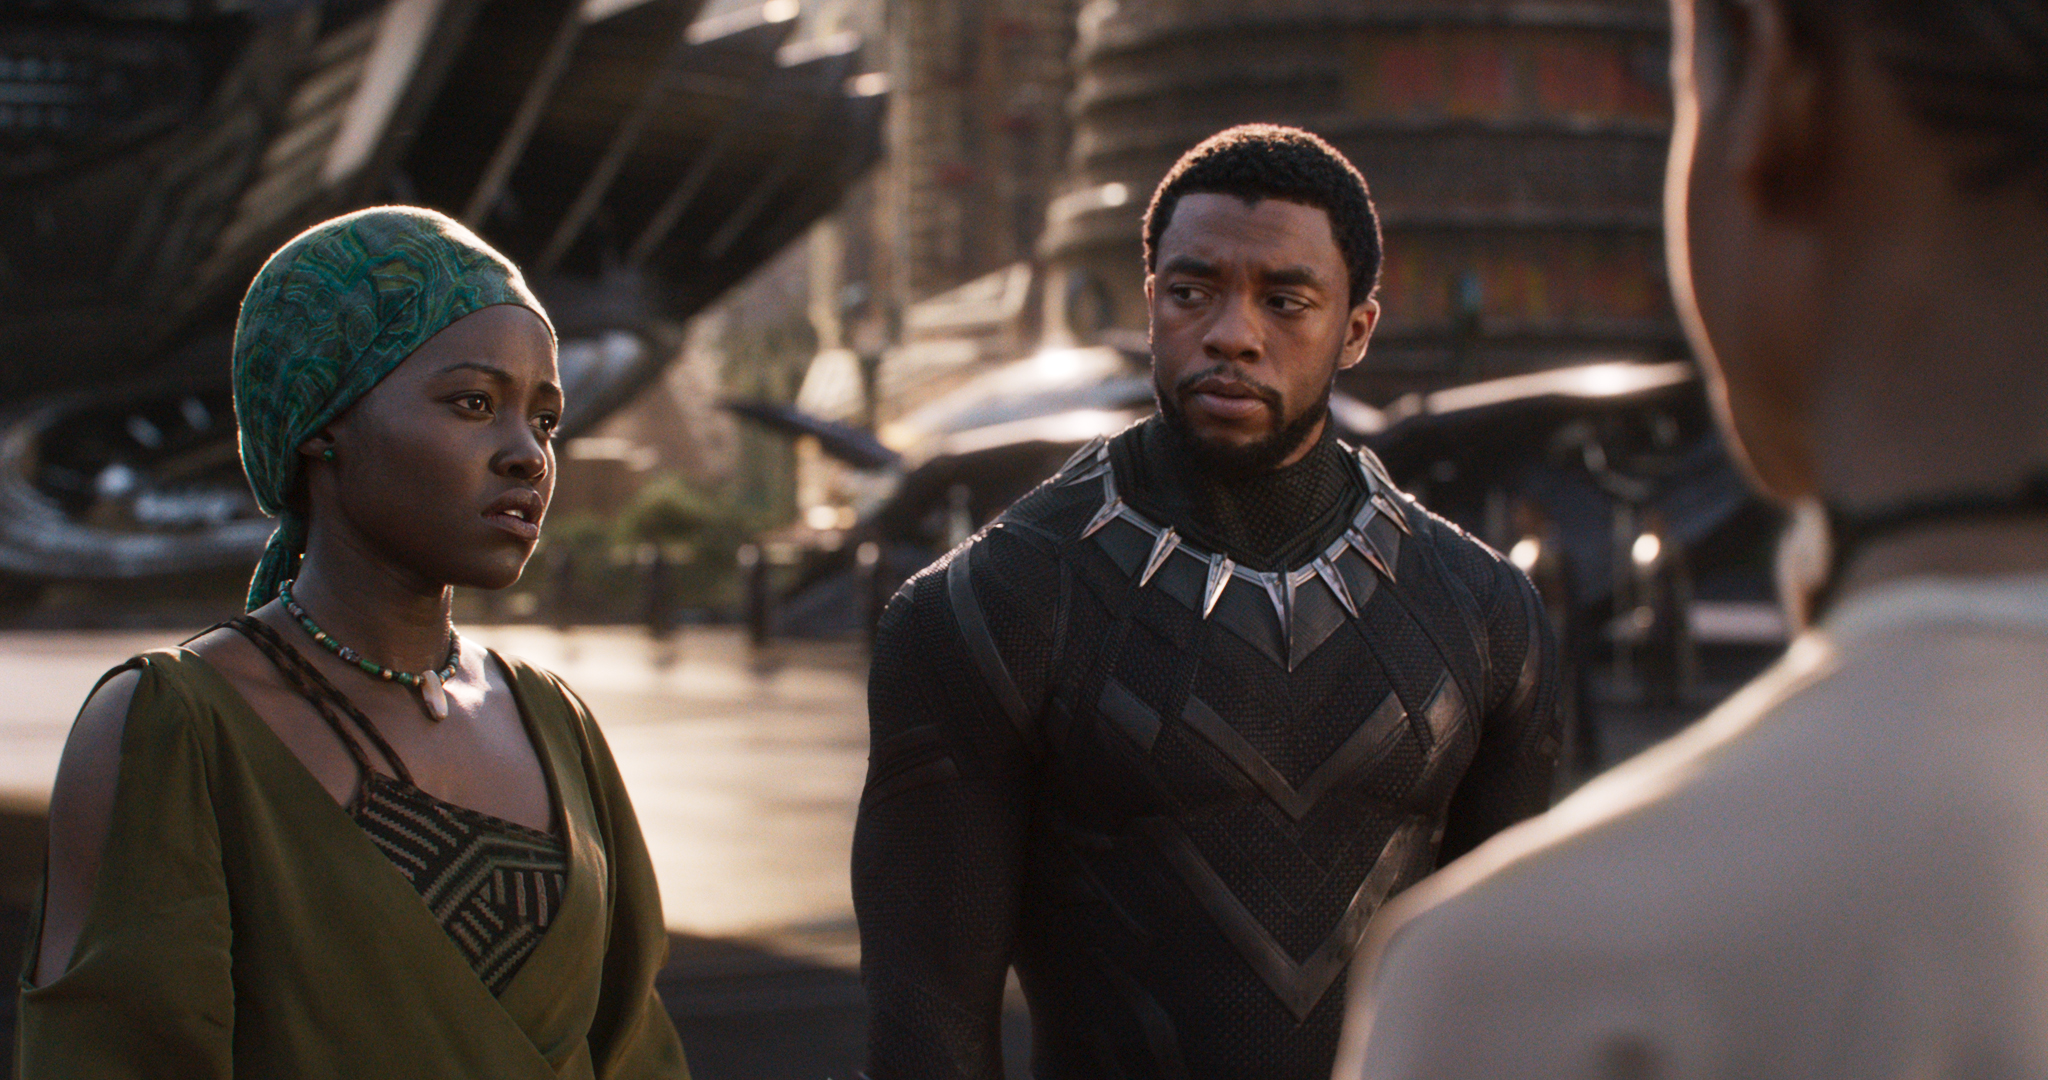 """Here's everything we already know about a potential """"Black Panther"""" sequel"""